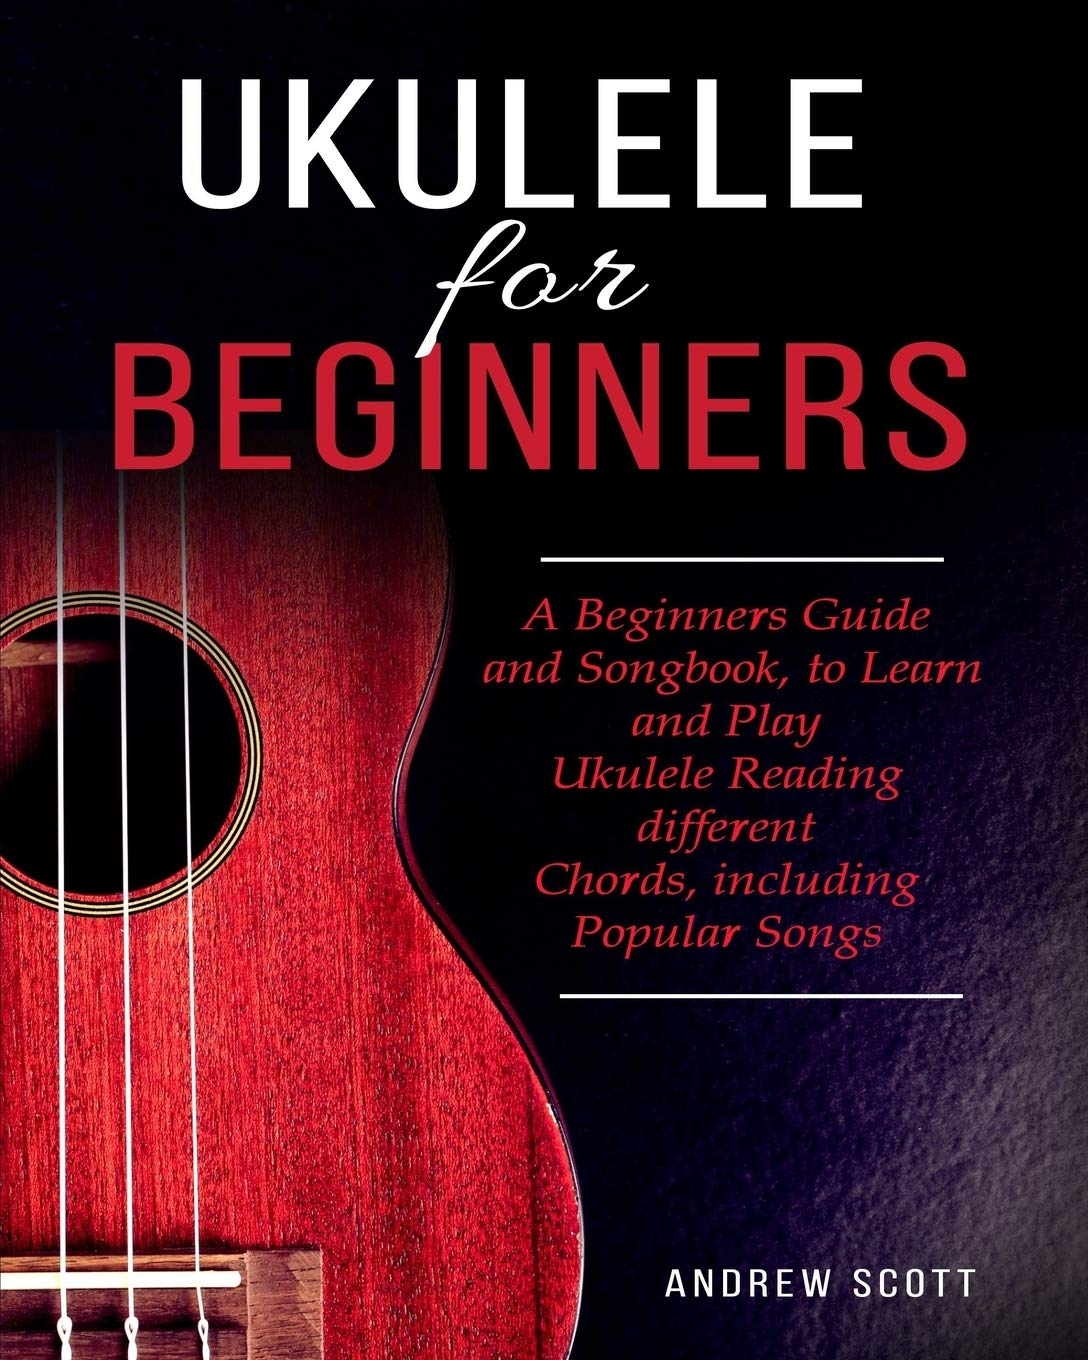 Ukulele Beginners Songbook Different Including